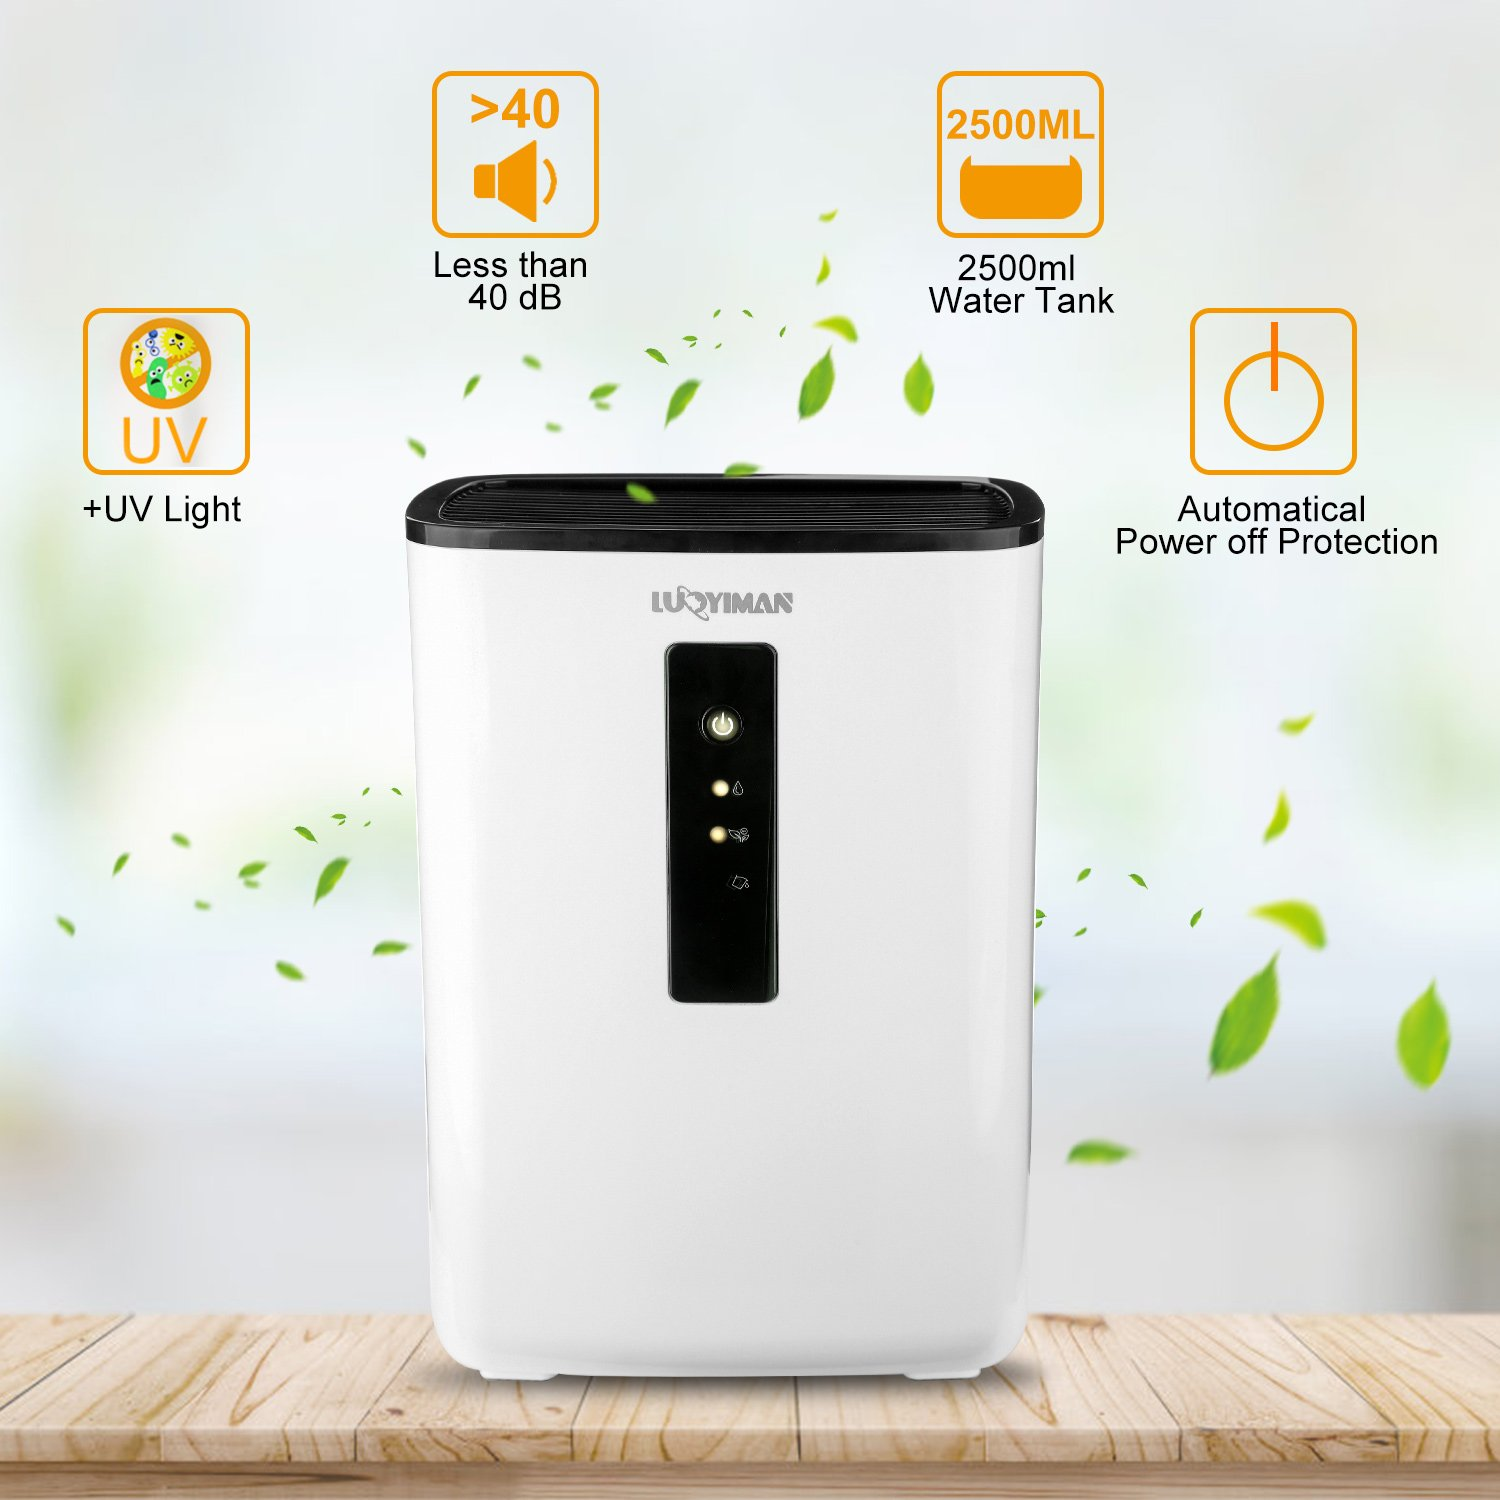 LUOYIMAN Dehumidifier Electric Home Dehumidifier Quiet Operation with UV Sterilization (2.5 Liter) by LUOYIMAN (Image #5)